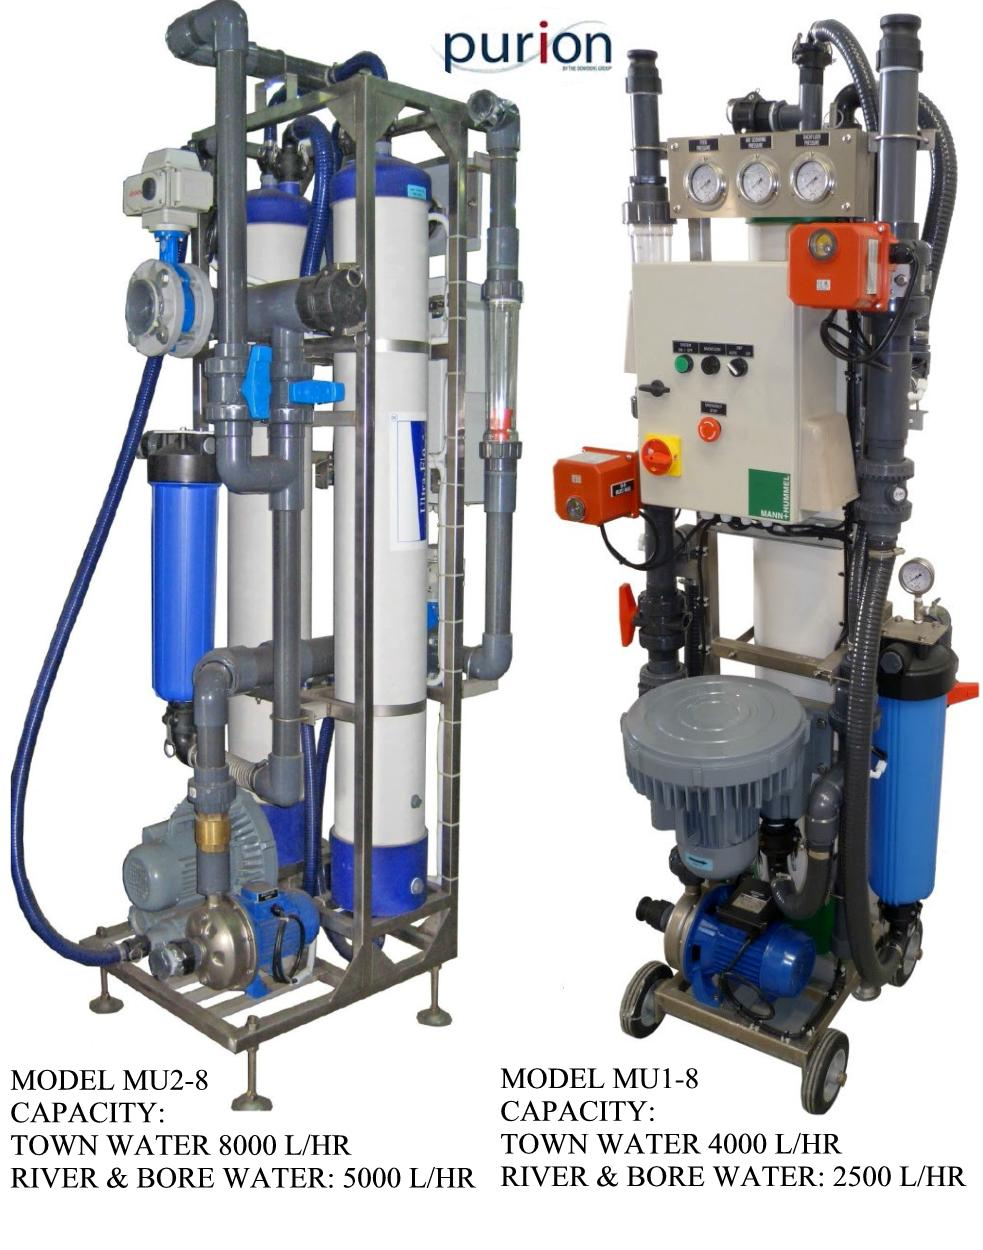 PURION MOBILE ULTRAFILTRATION SYSTEMS